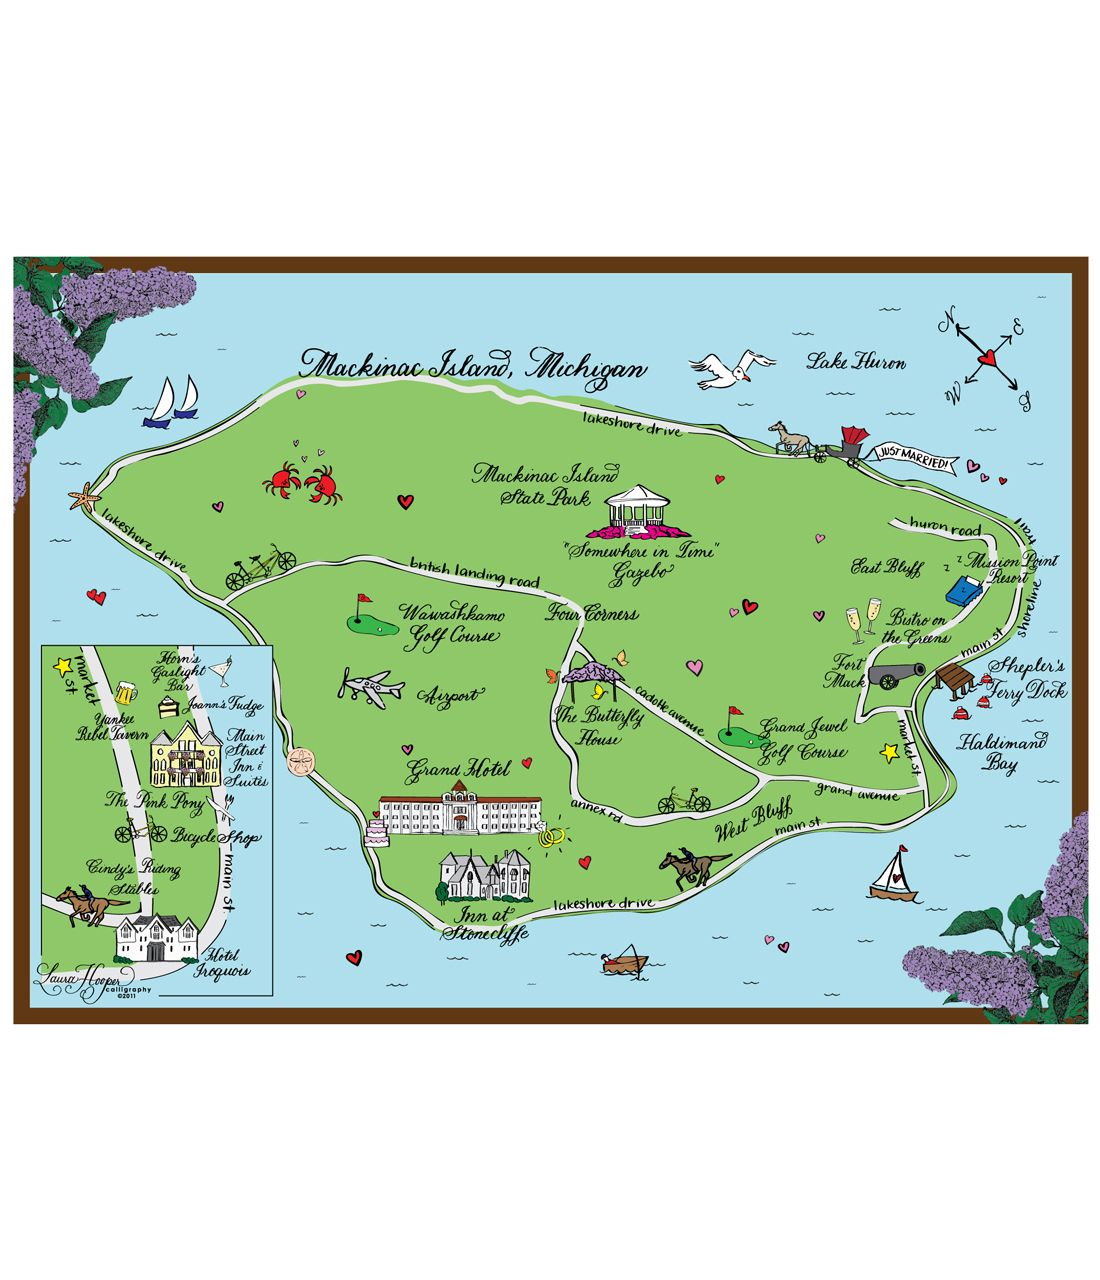 Mackinac Island wedding map tote bags | Favorite Places ... on nantucket hotel map, gaylord hotel map, catalina island hotel map, waikiki hotel map, kauai island hotel map, south manitou island map, aria hotel map, mirage hotel map, bally's hotel map, mgm hotel map, fort mackinac on a map, reno hotel map, mackinac county road map, broadmoor hotel map, cat island map, grand californian hotel map, mackinac michigan map, grand rapids hotel map, excalibur hotel map, frankenmuth hotel map,